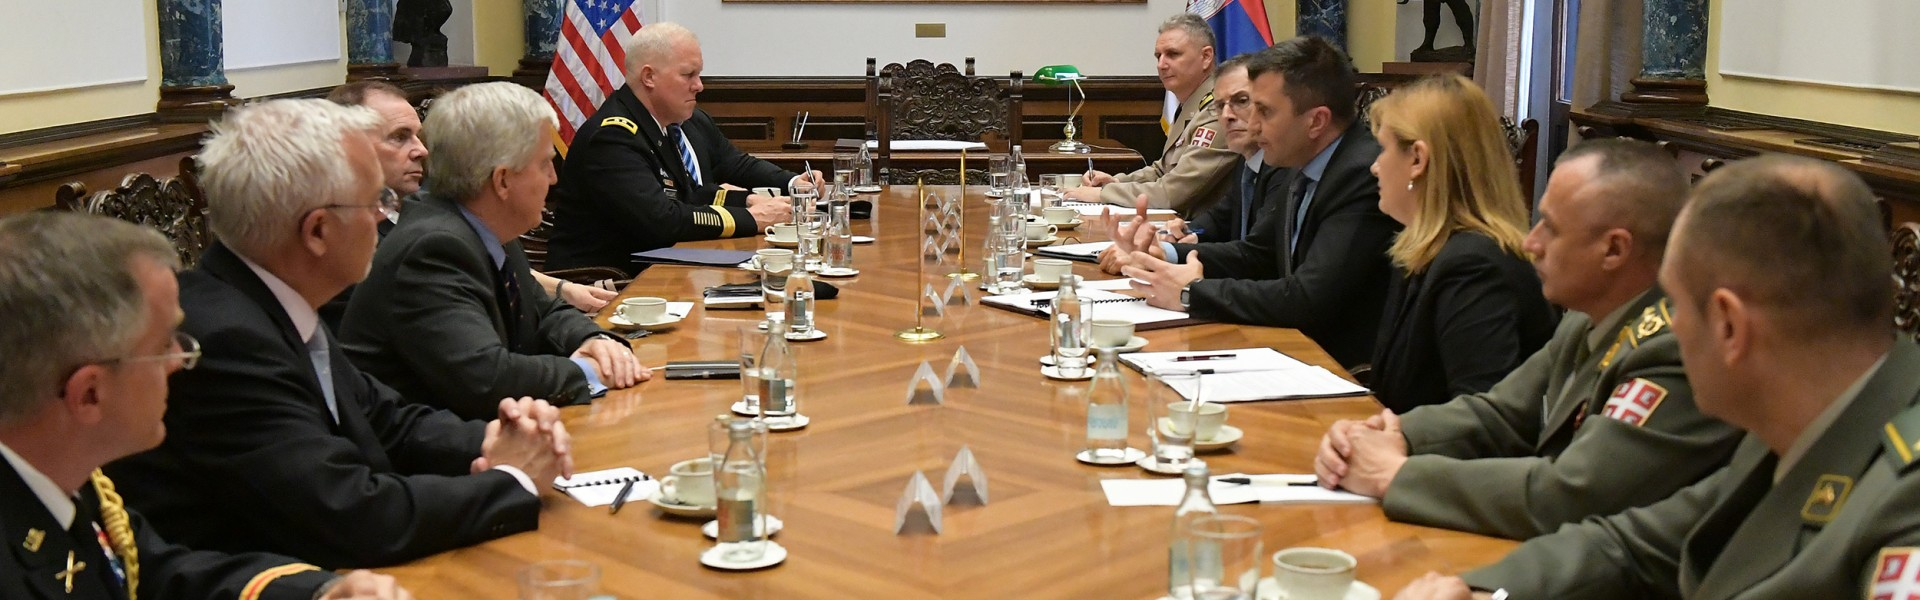 Meeting of Minister Djordjevic with General Hodges